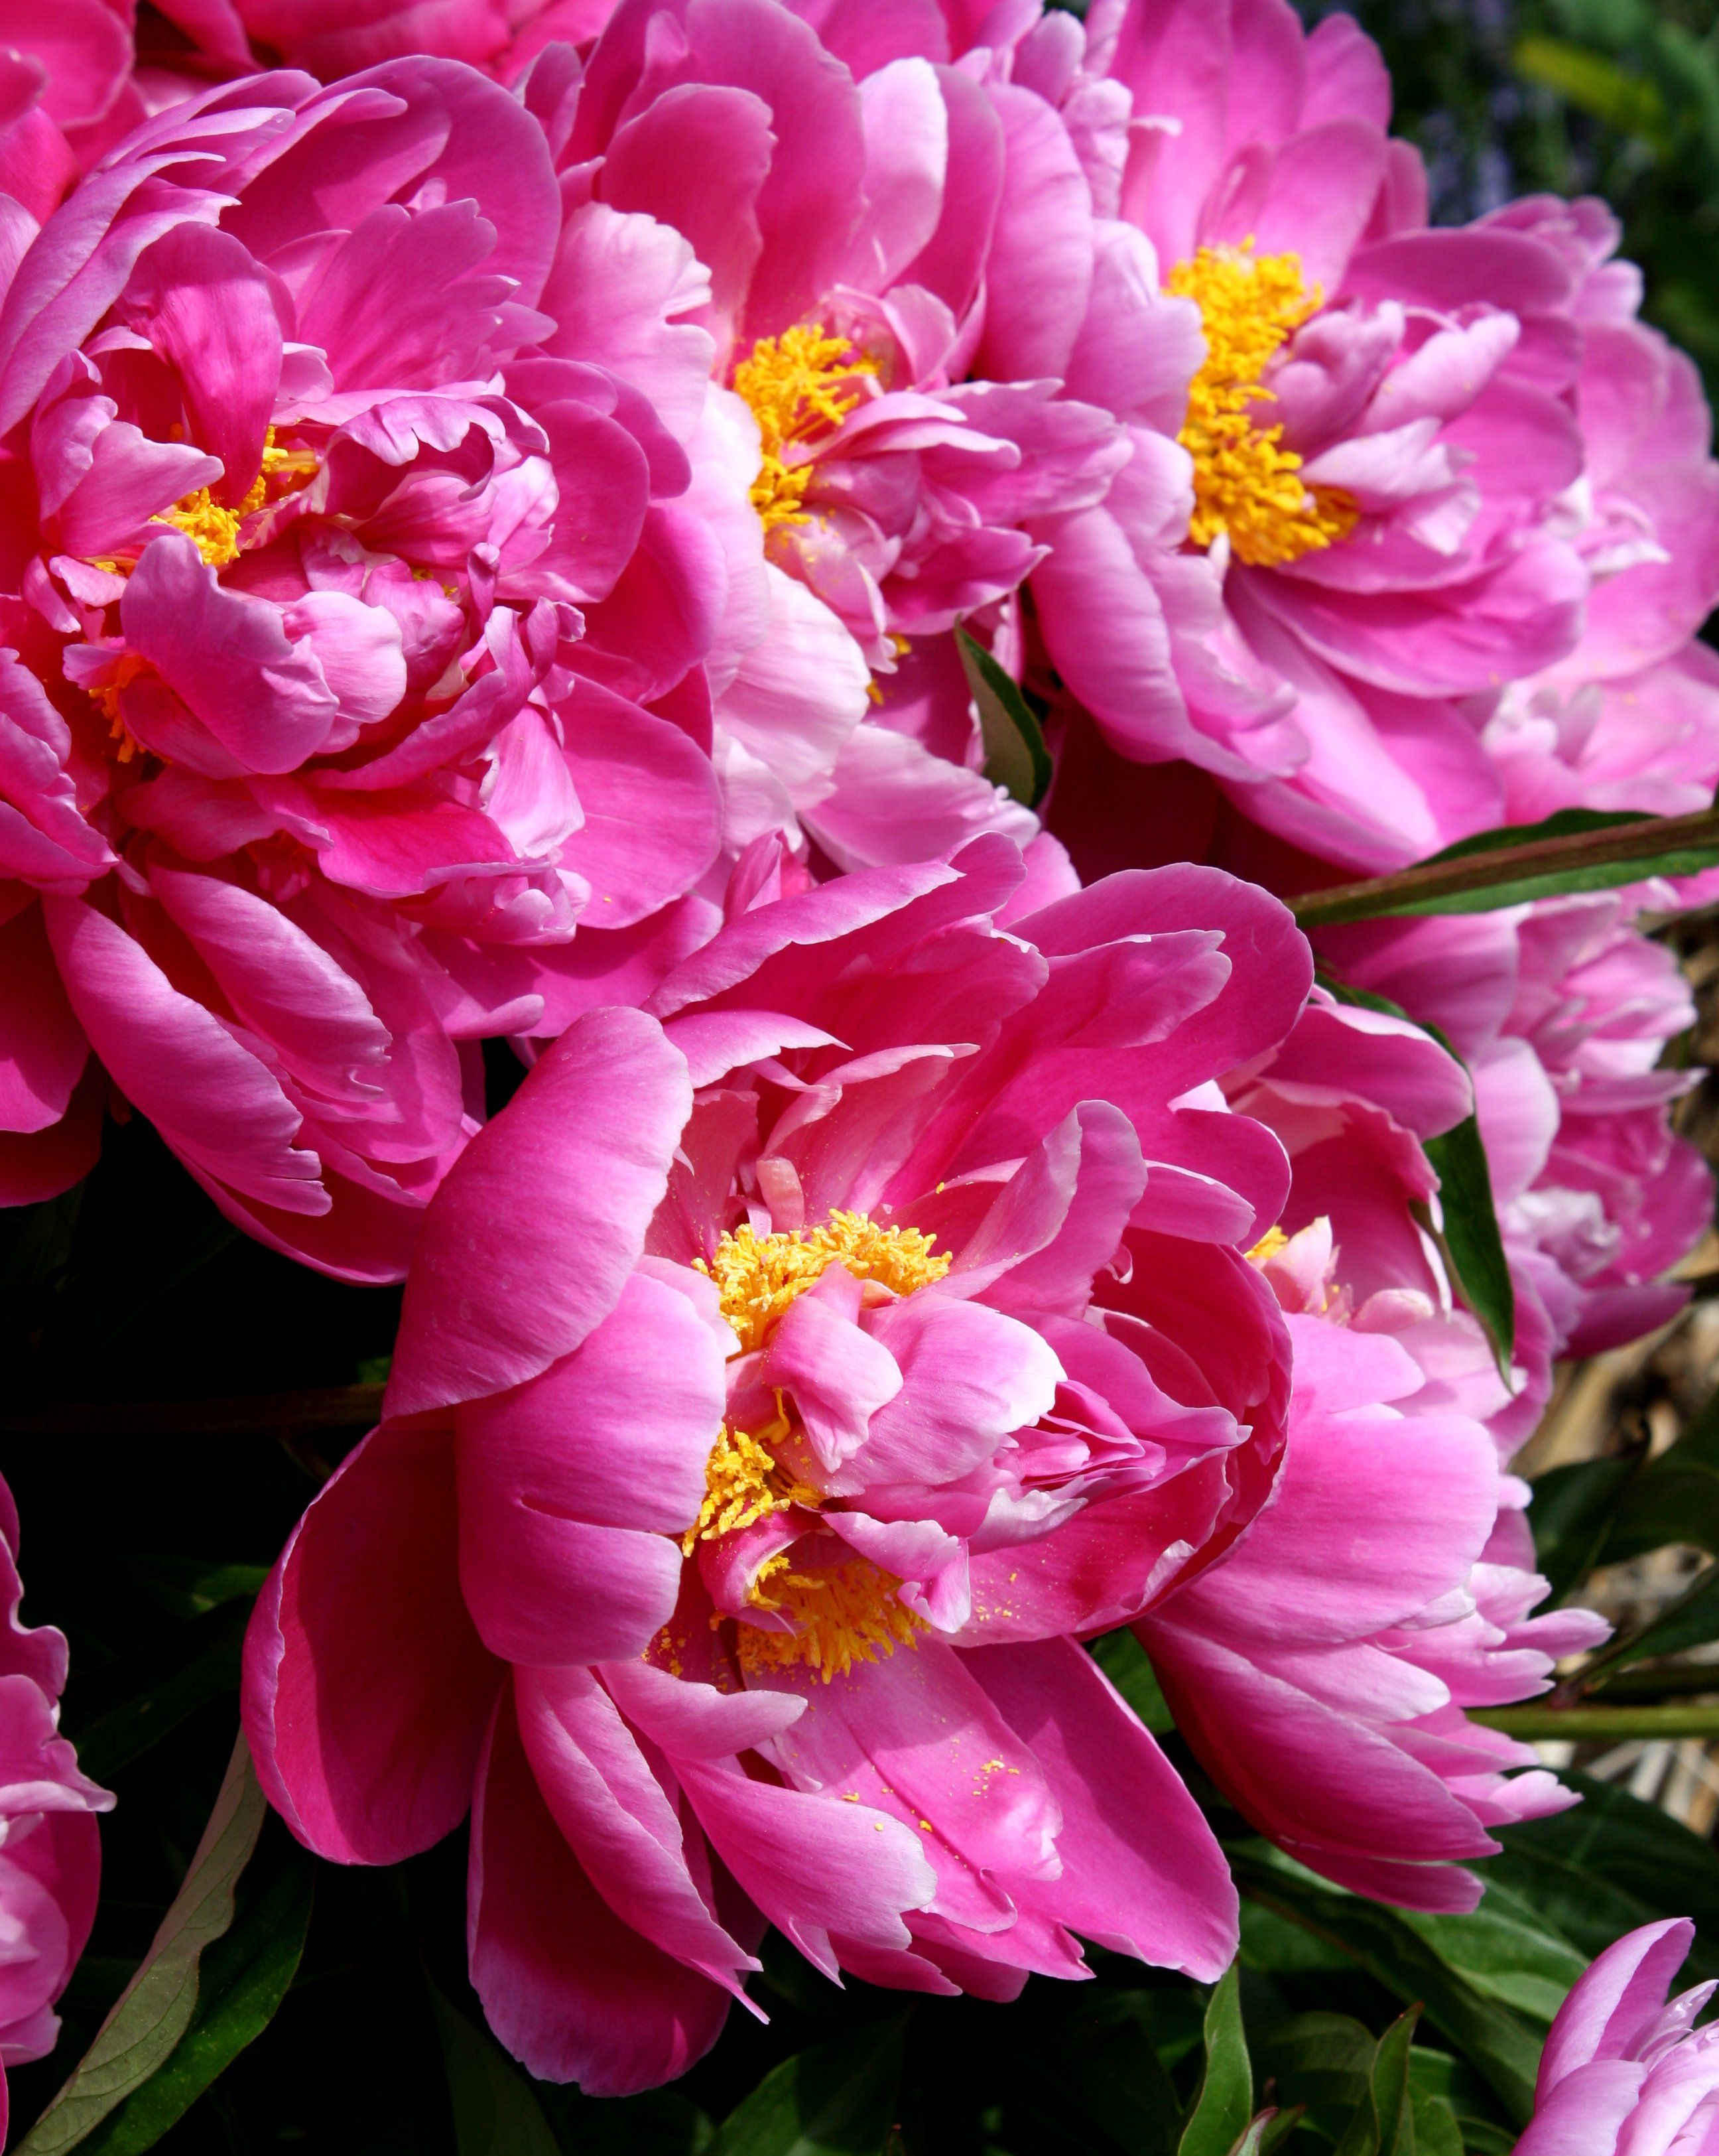 the peony is a perennial shrub that blooms each summer with big